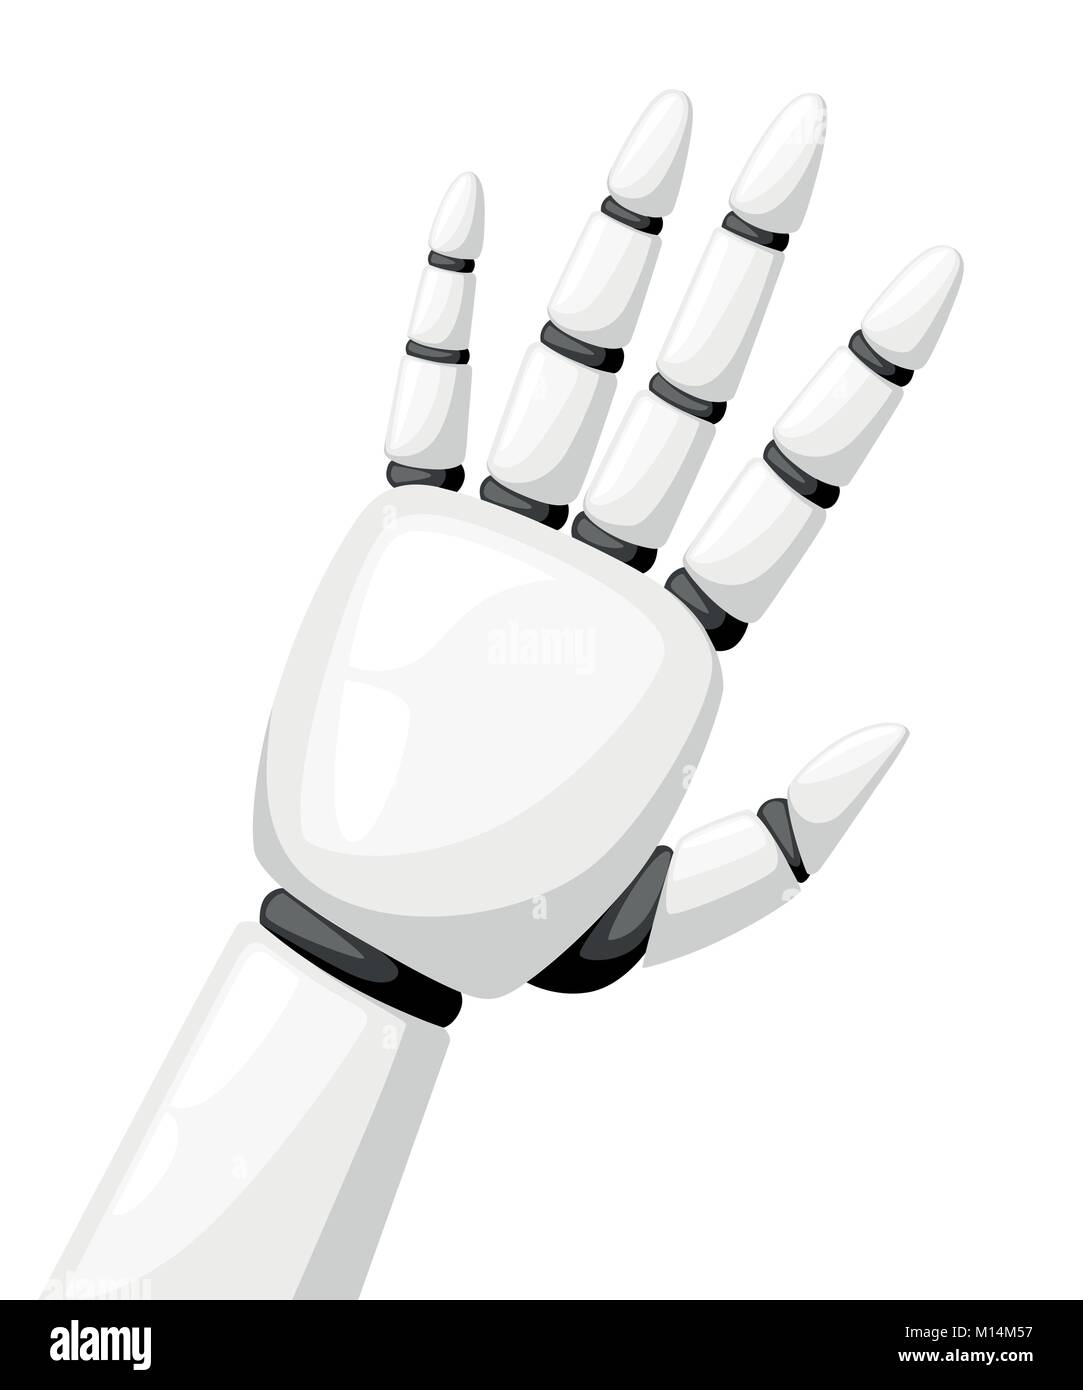 White robot hand or robotic arm for prosthetics vector